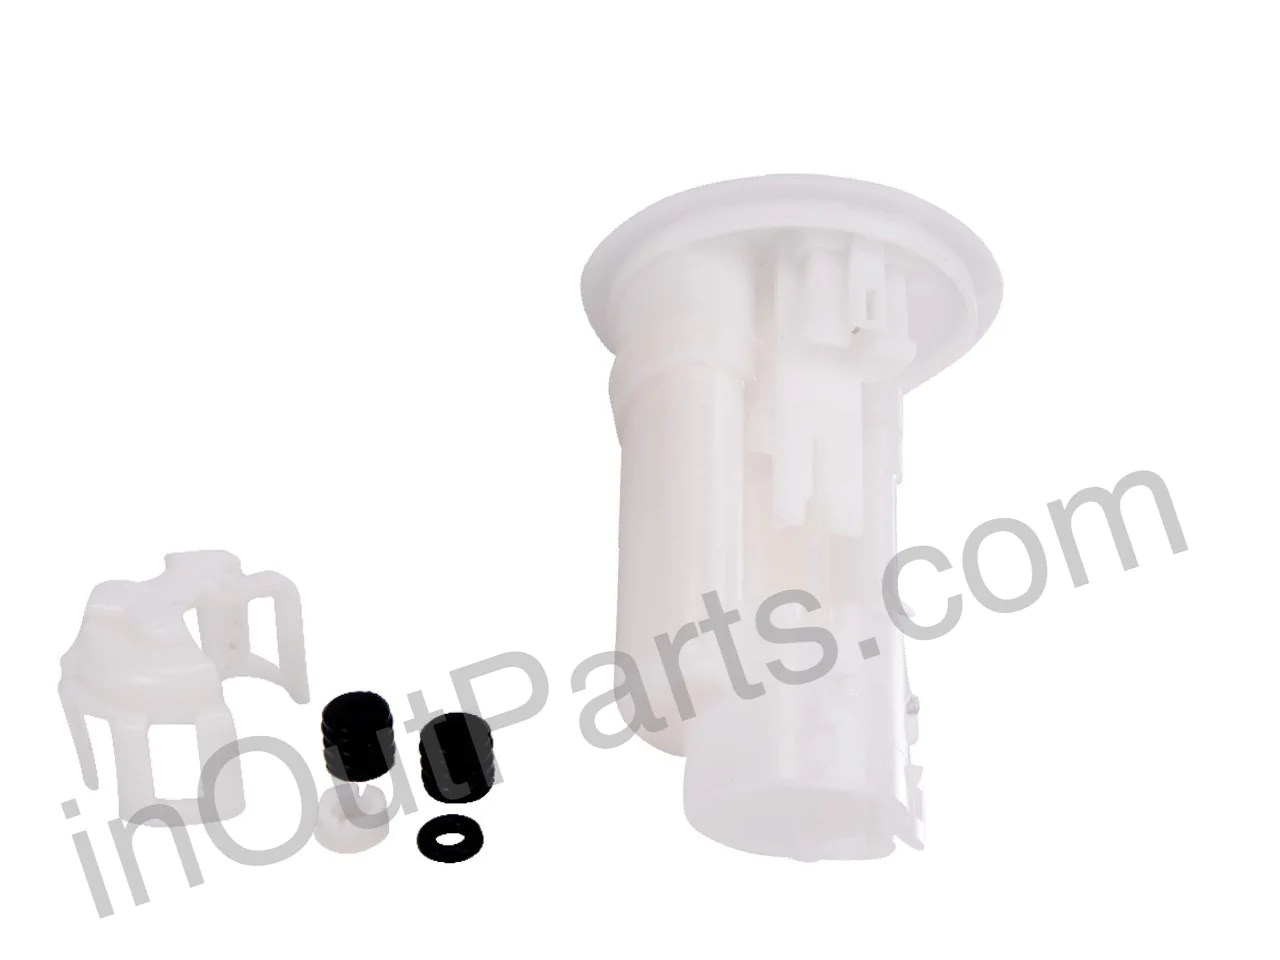 small resolution of fuel filter fits honda inspire accord usa uc1 2003 2004 2005 2006 20 inout parts